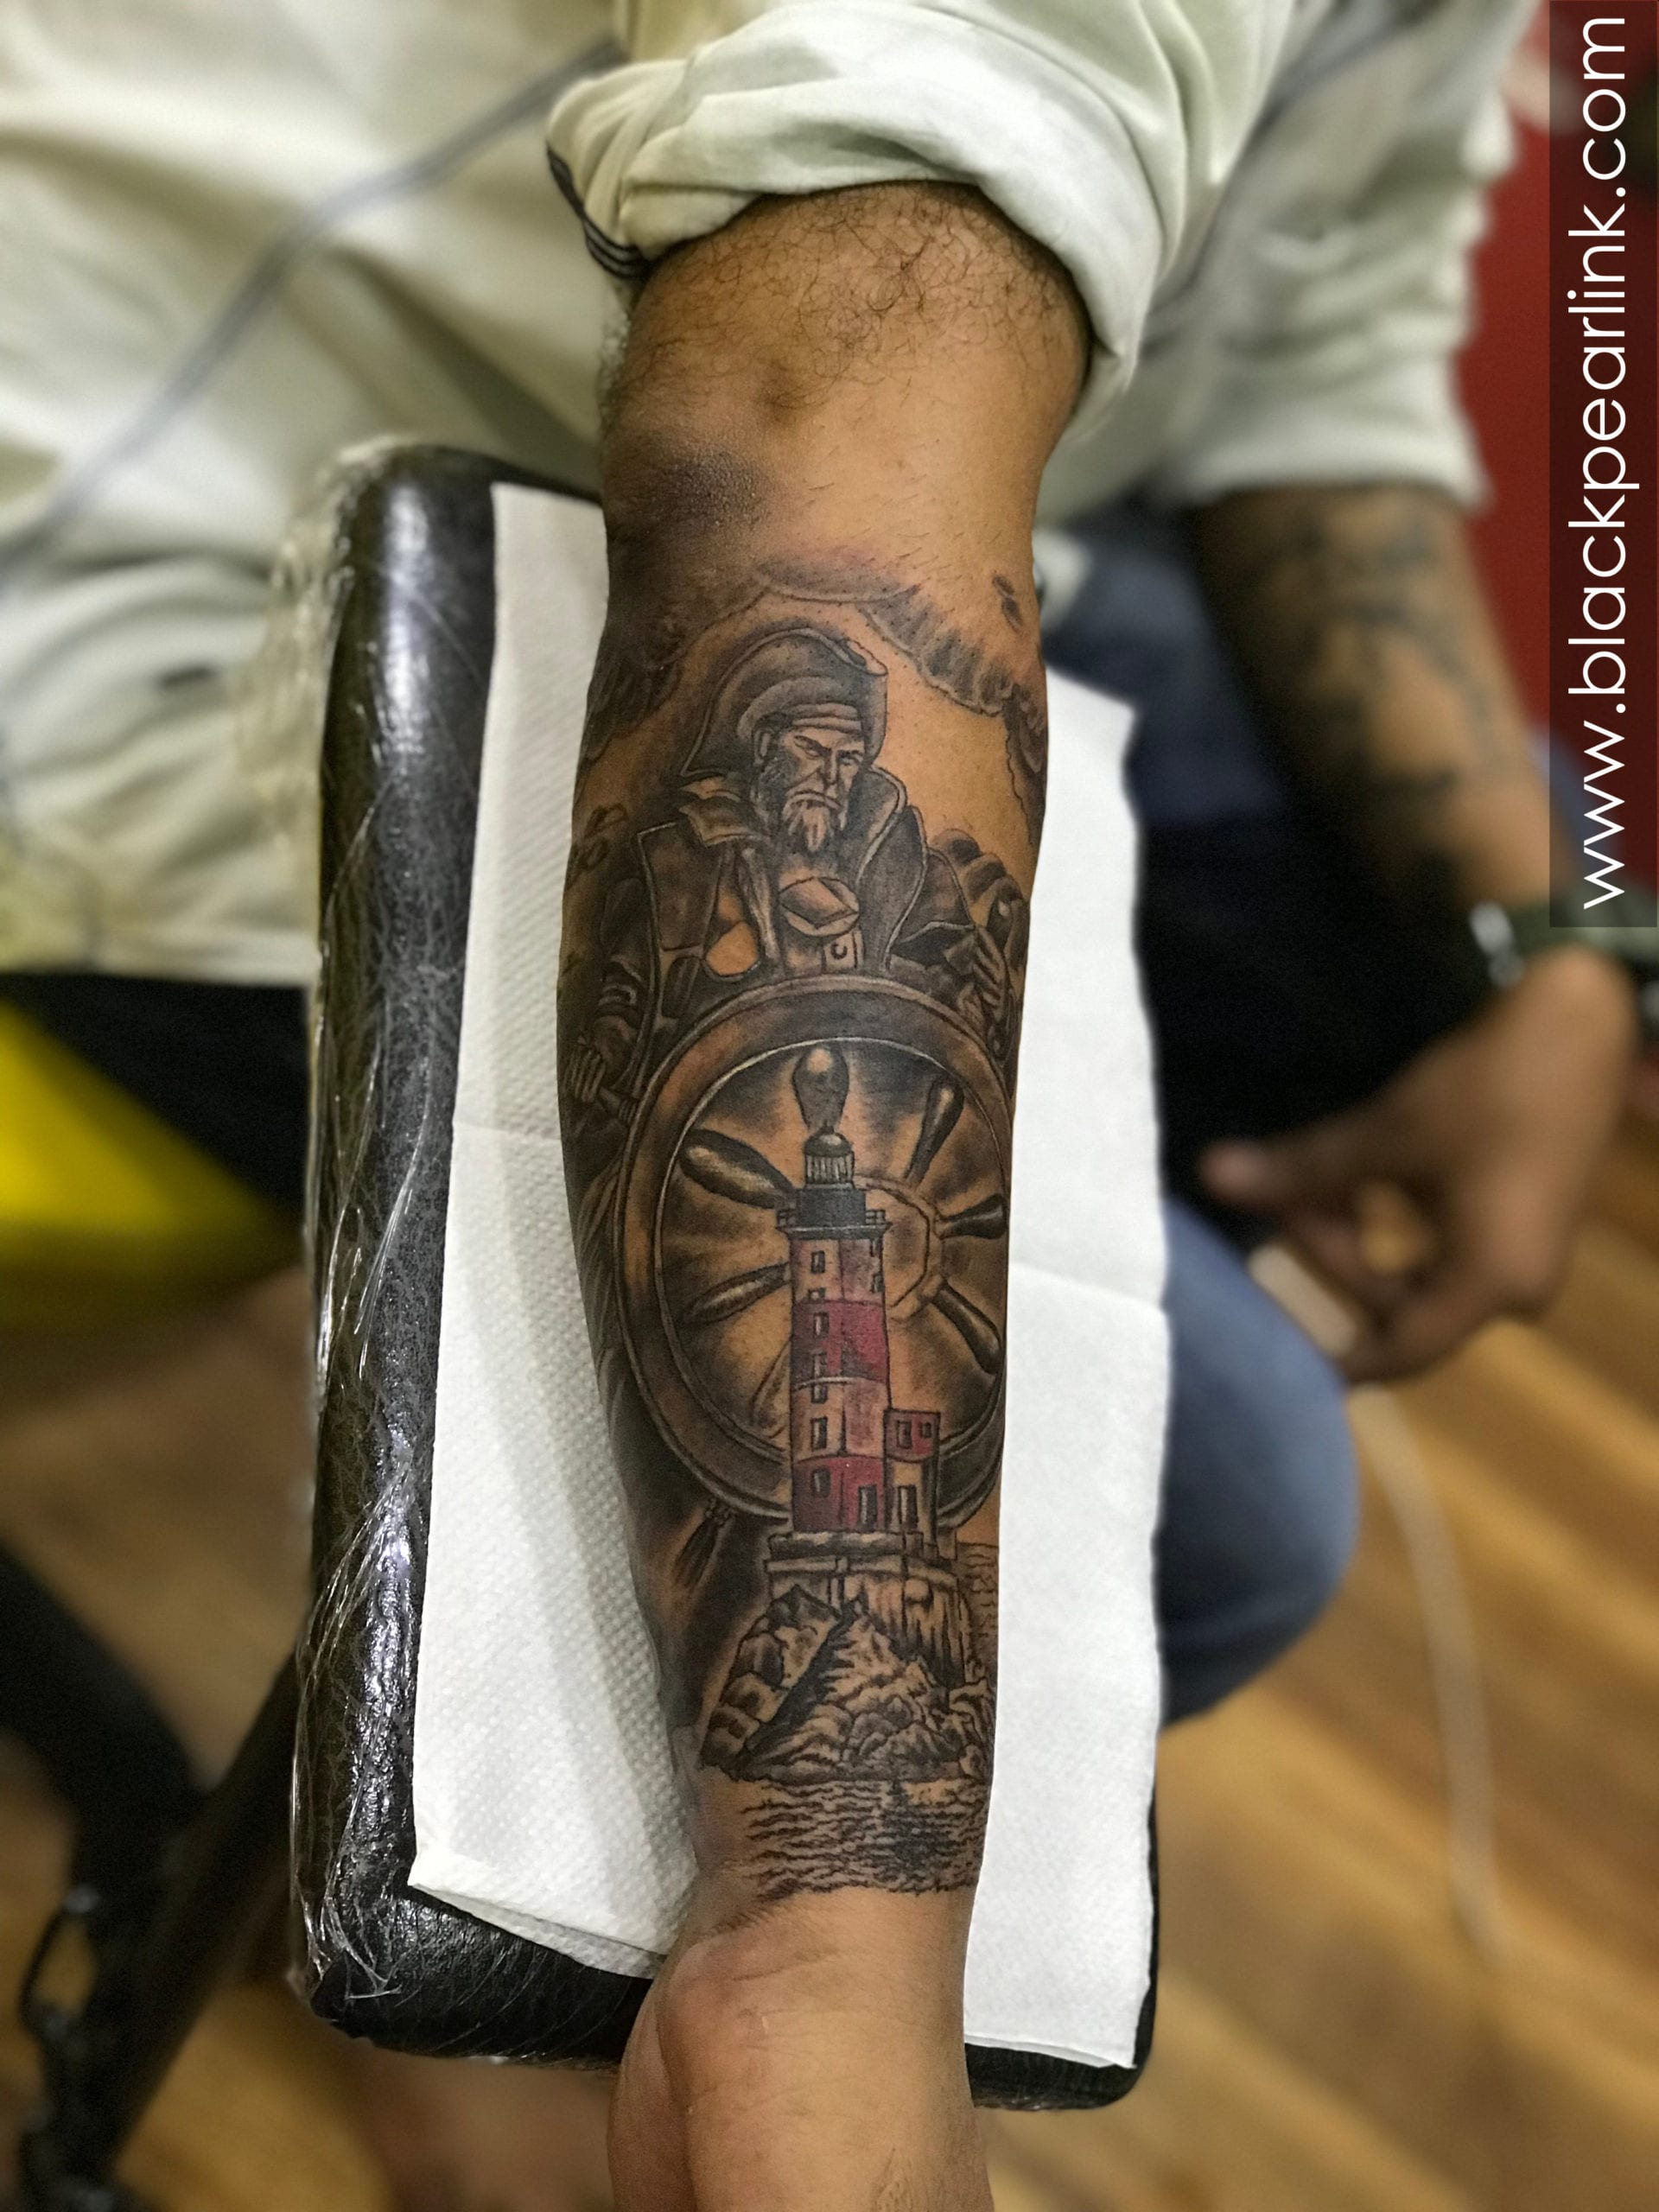 Life of a Pirate on Forearm Sleeve